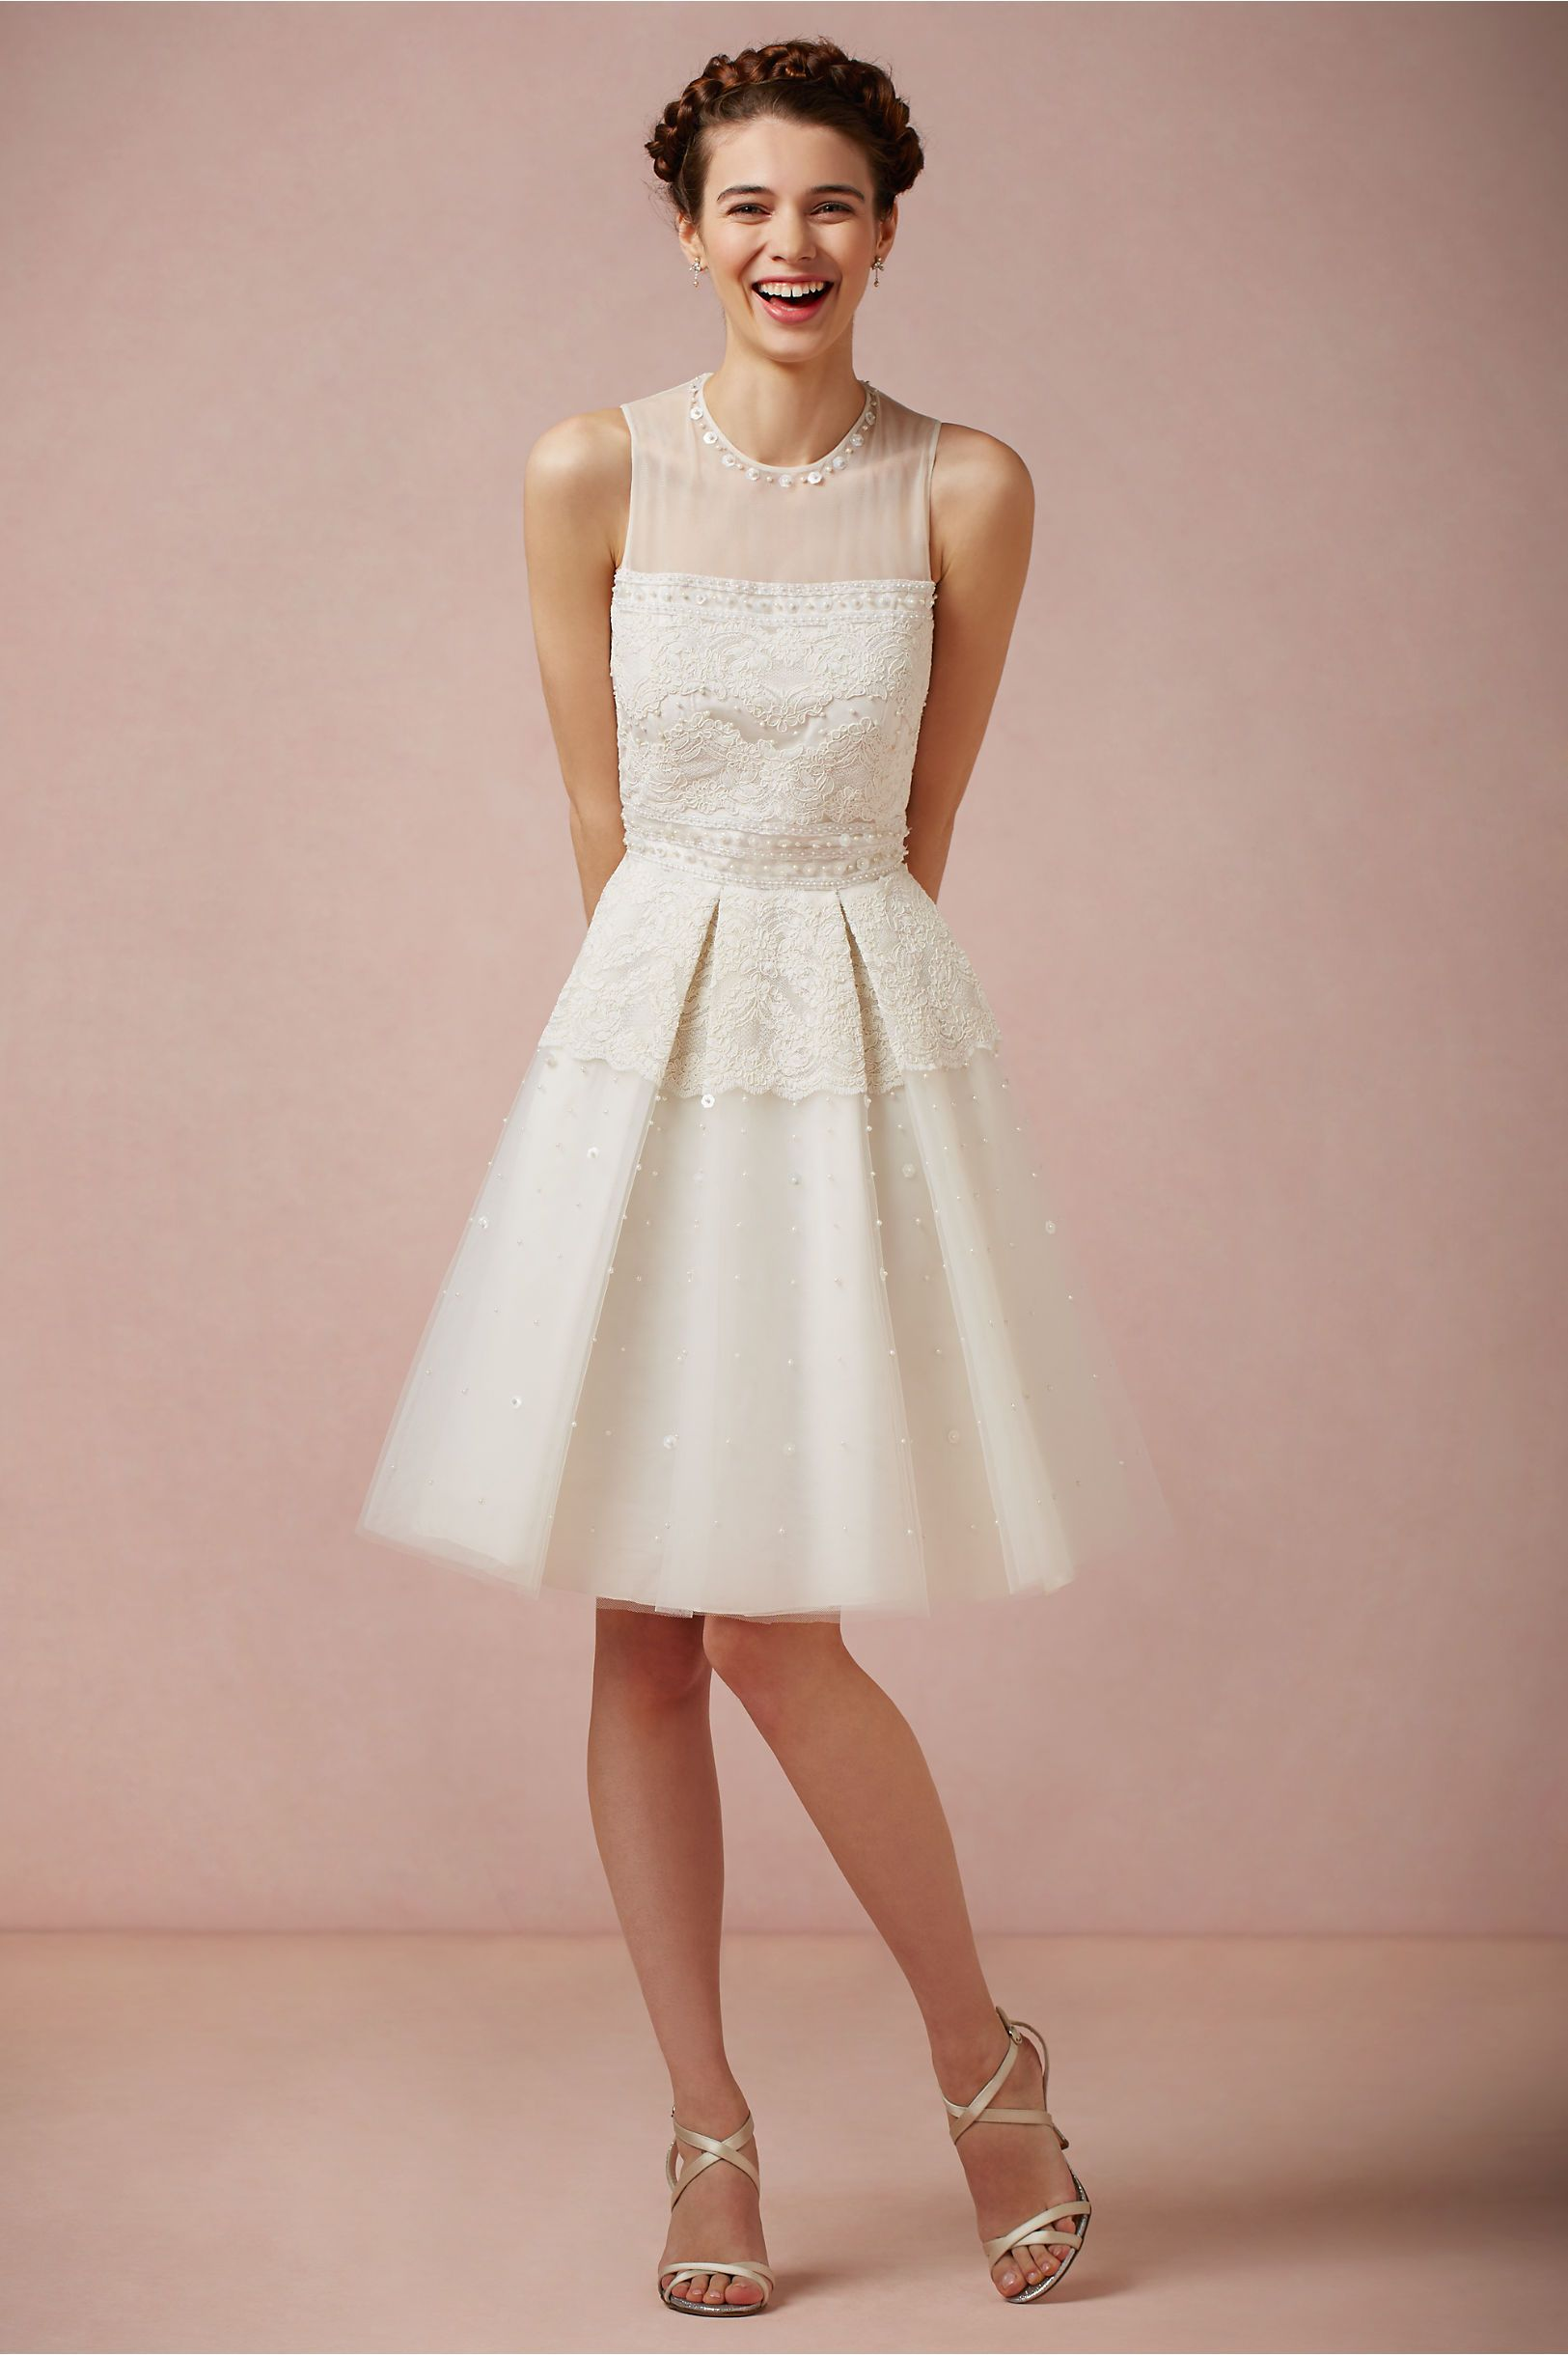 Pinpearl Dress from BHLDN | FASHION | Pinterest | Vestidos de novia ...